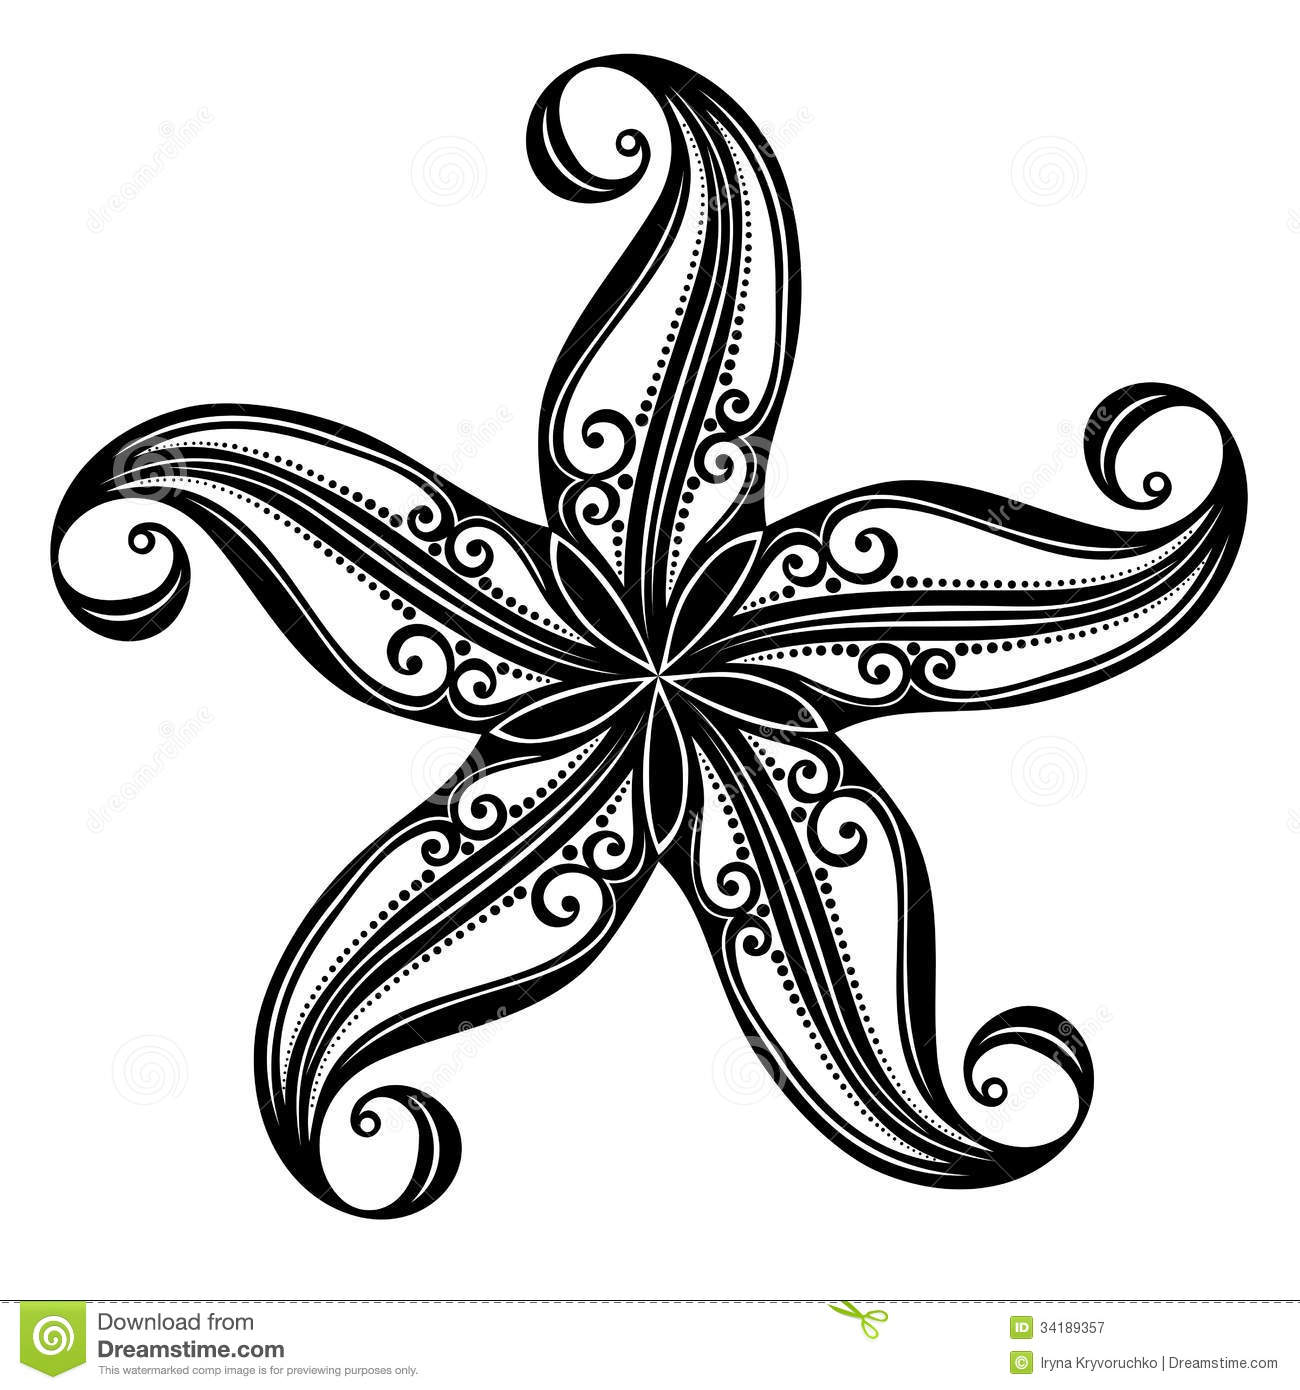 Starfish Stock Illustrations – 20,900 Starfish Stock Illustrations ... for Starfish Clipart Black And White  45hul